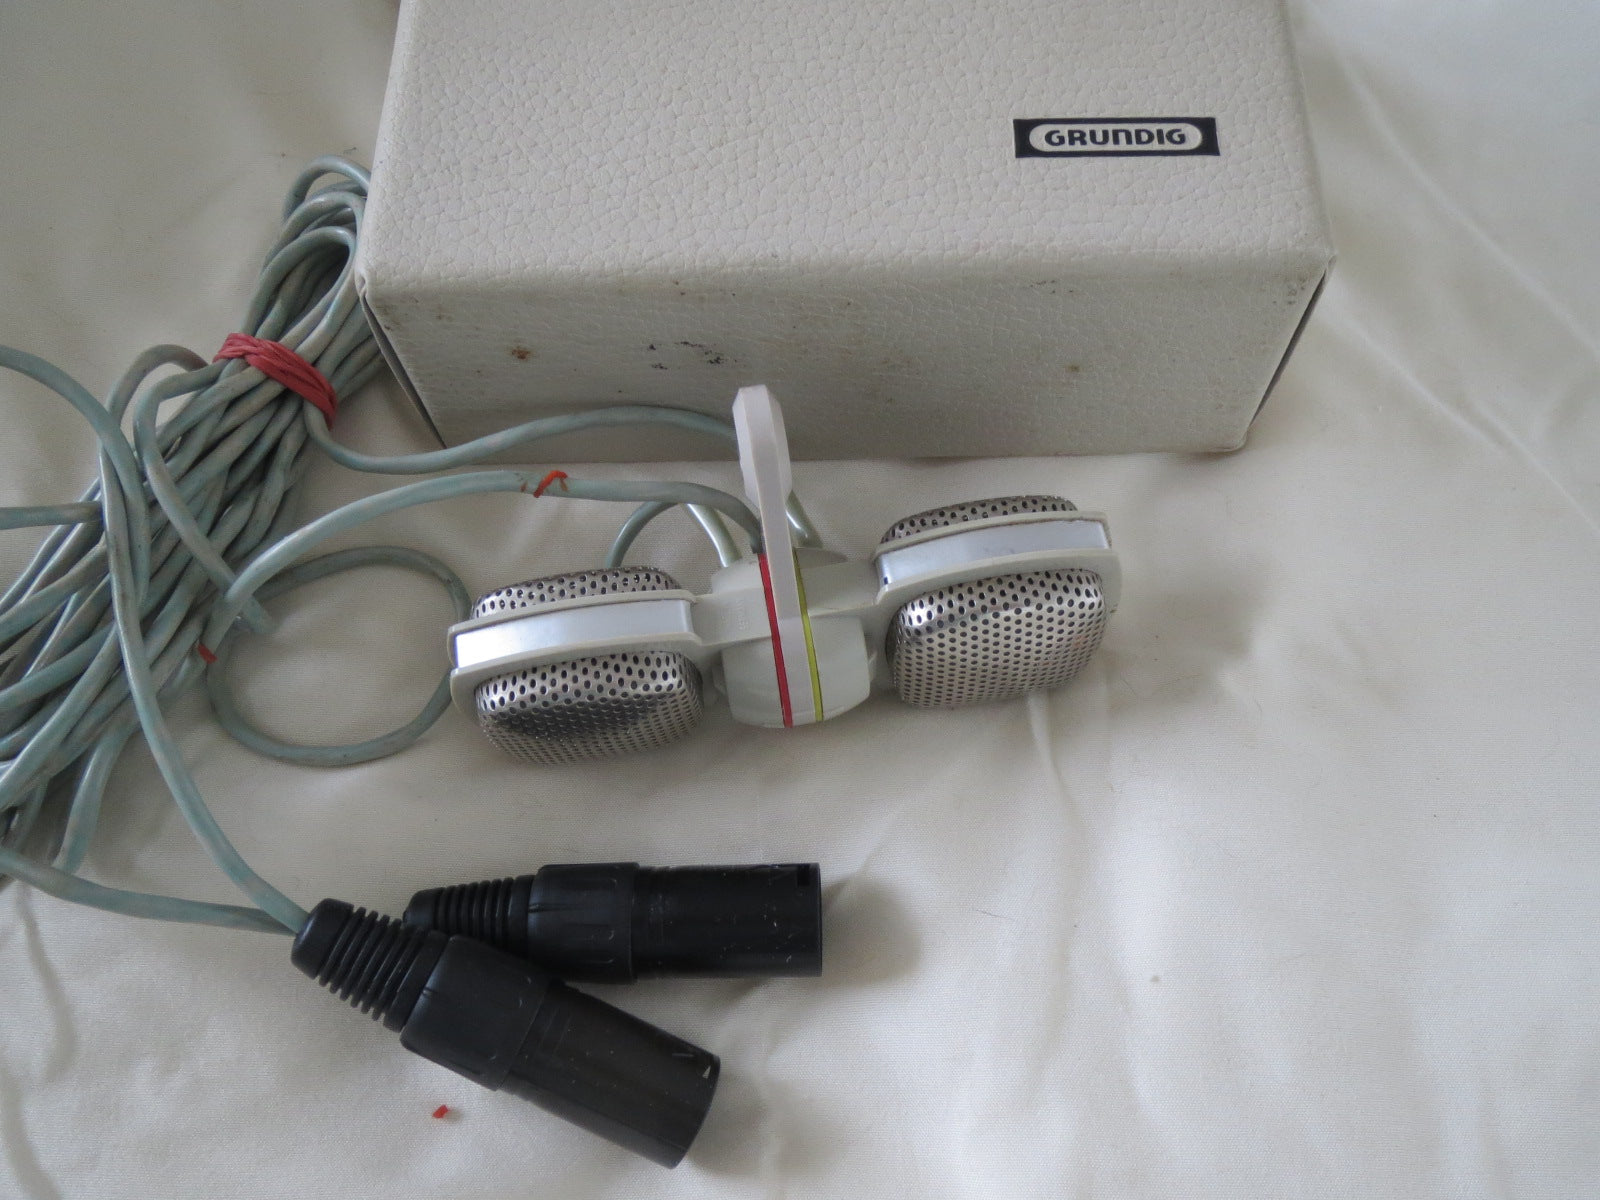 GRUNDIG GDSM202 STEREO DYNAMIC MICROPHONE SET MADE BY SENNHEISER, WITH XLR CABLE